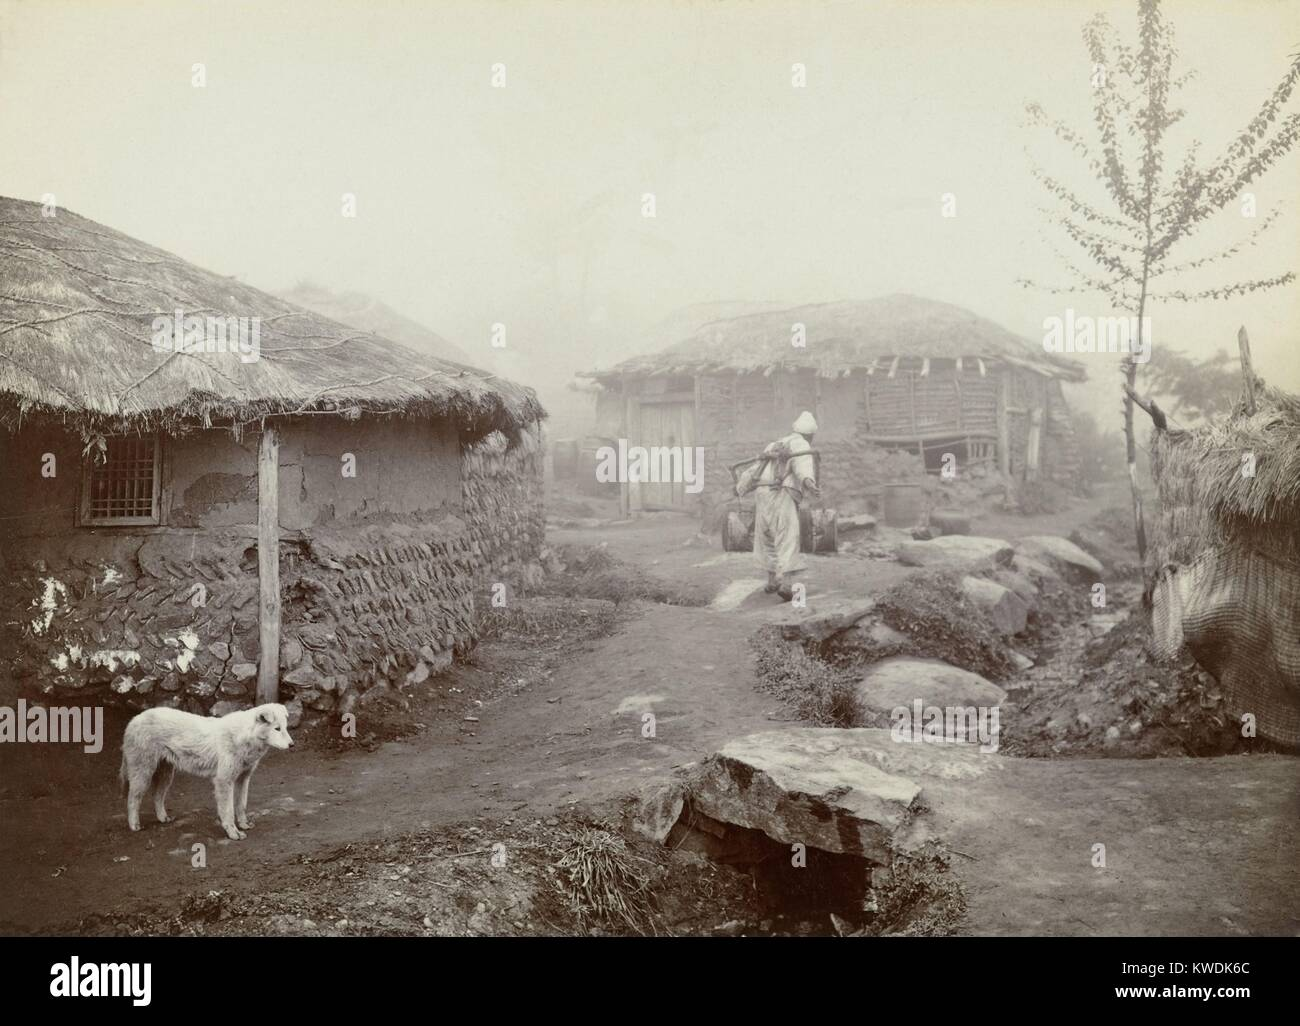 Dutch missionary, Jan Adriani, took this photo in Pyongyang, Korean in 1907 (BSLOC_2017_18_76) - Stock Image